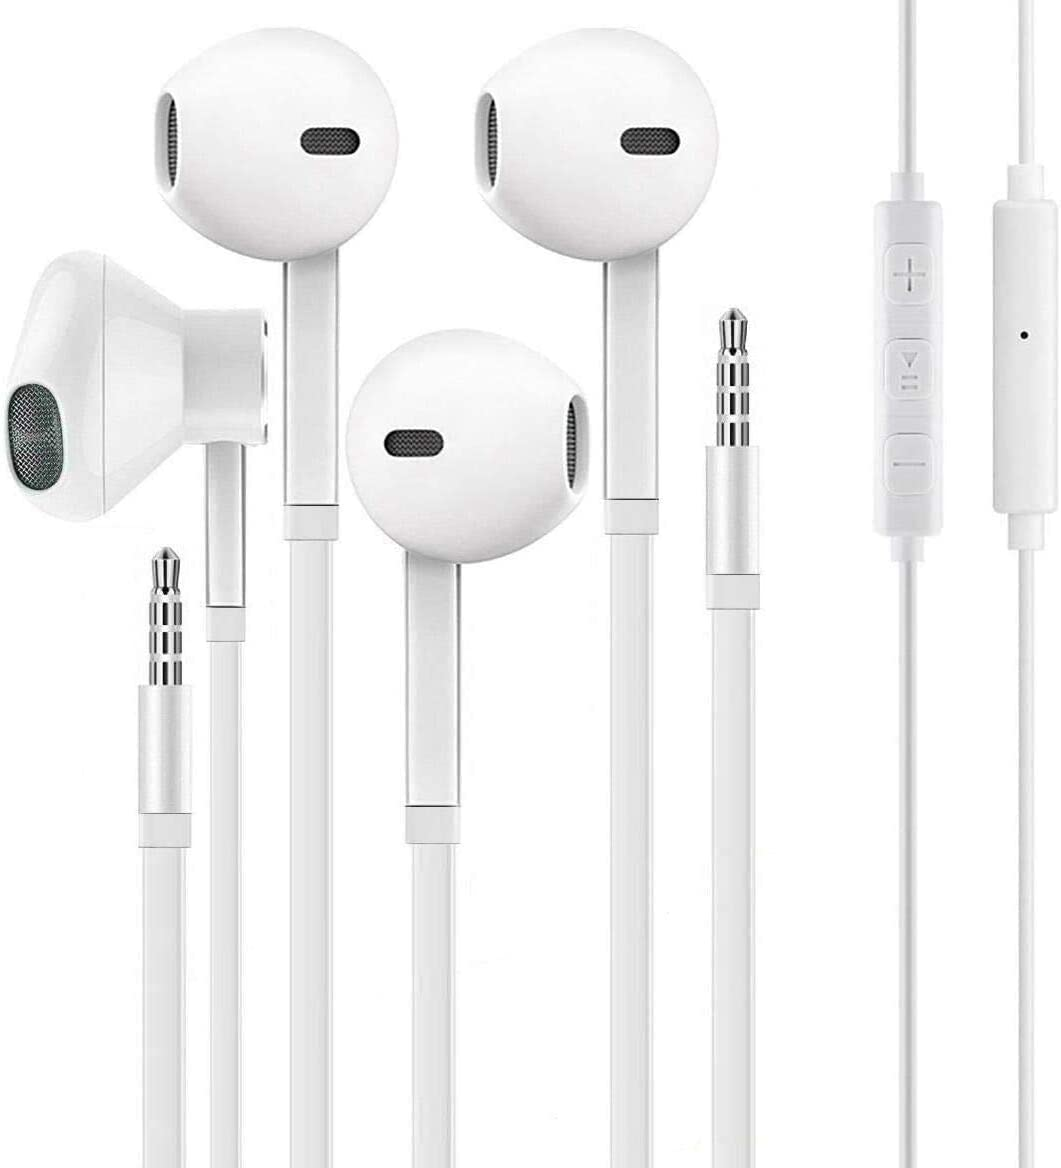 [2Pack] for iPhone Earbuds 3.5mm Wired Headphones Noise Isolating with Built-in Mic&Volume Control Earphones Compatible with iPhone 6S/6S Plus/6/6 Plus/SE 5S Android MP3/MP4/PC